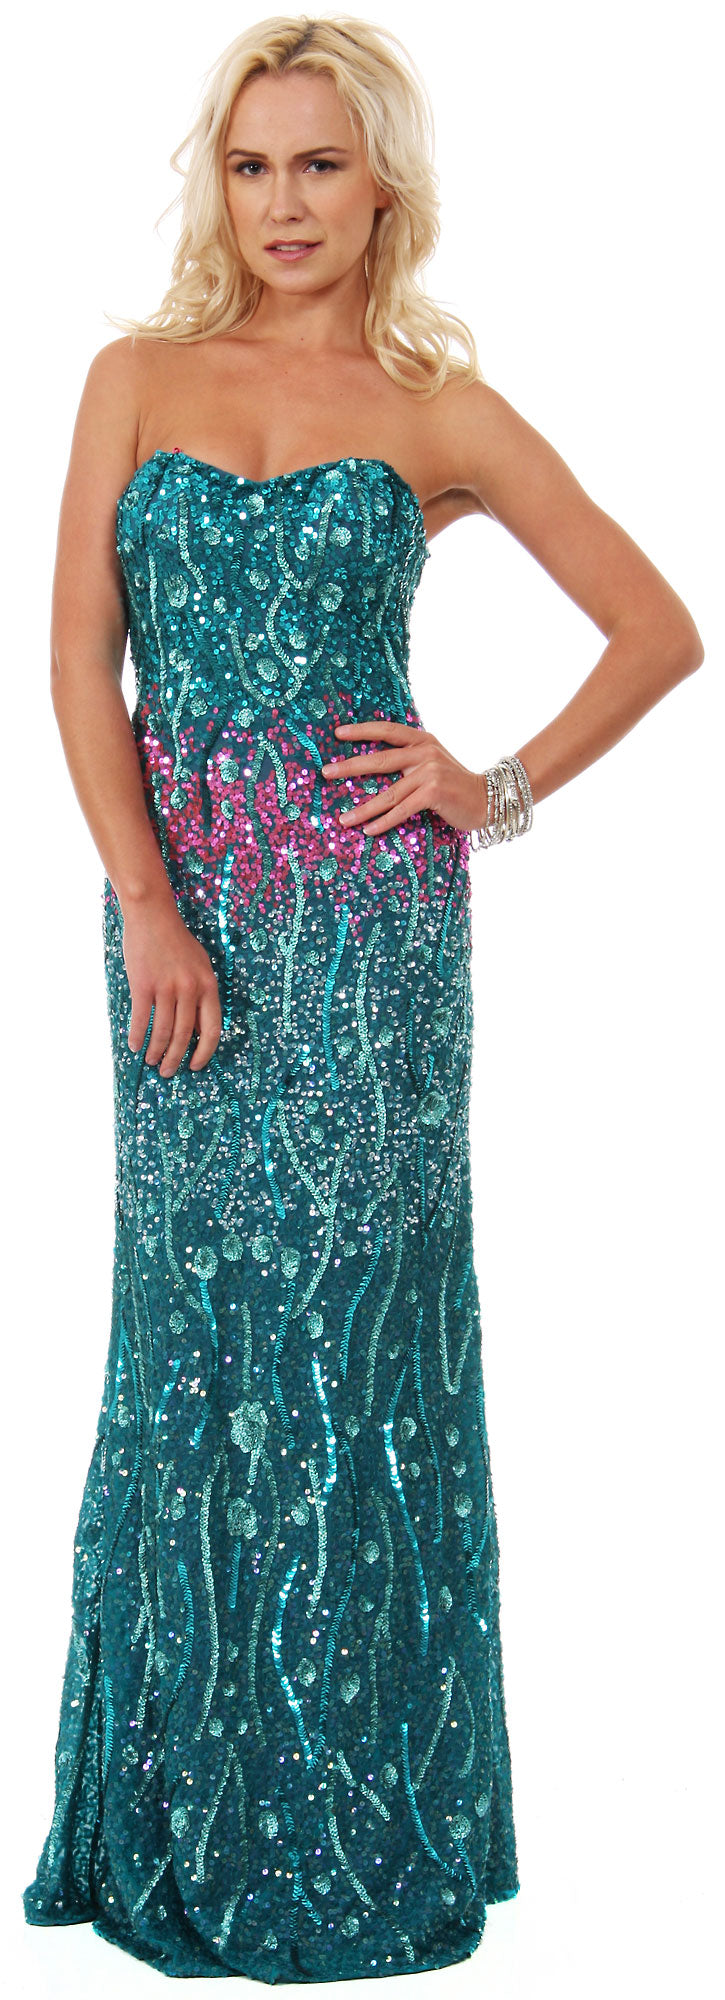 Image of Strapless Exquisitely Sequined Long Formal Prom Dress  in Emerald Green/Fuchsia